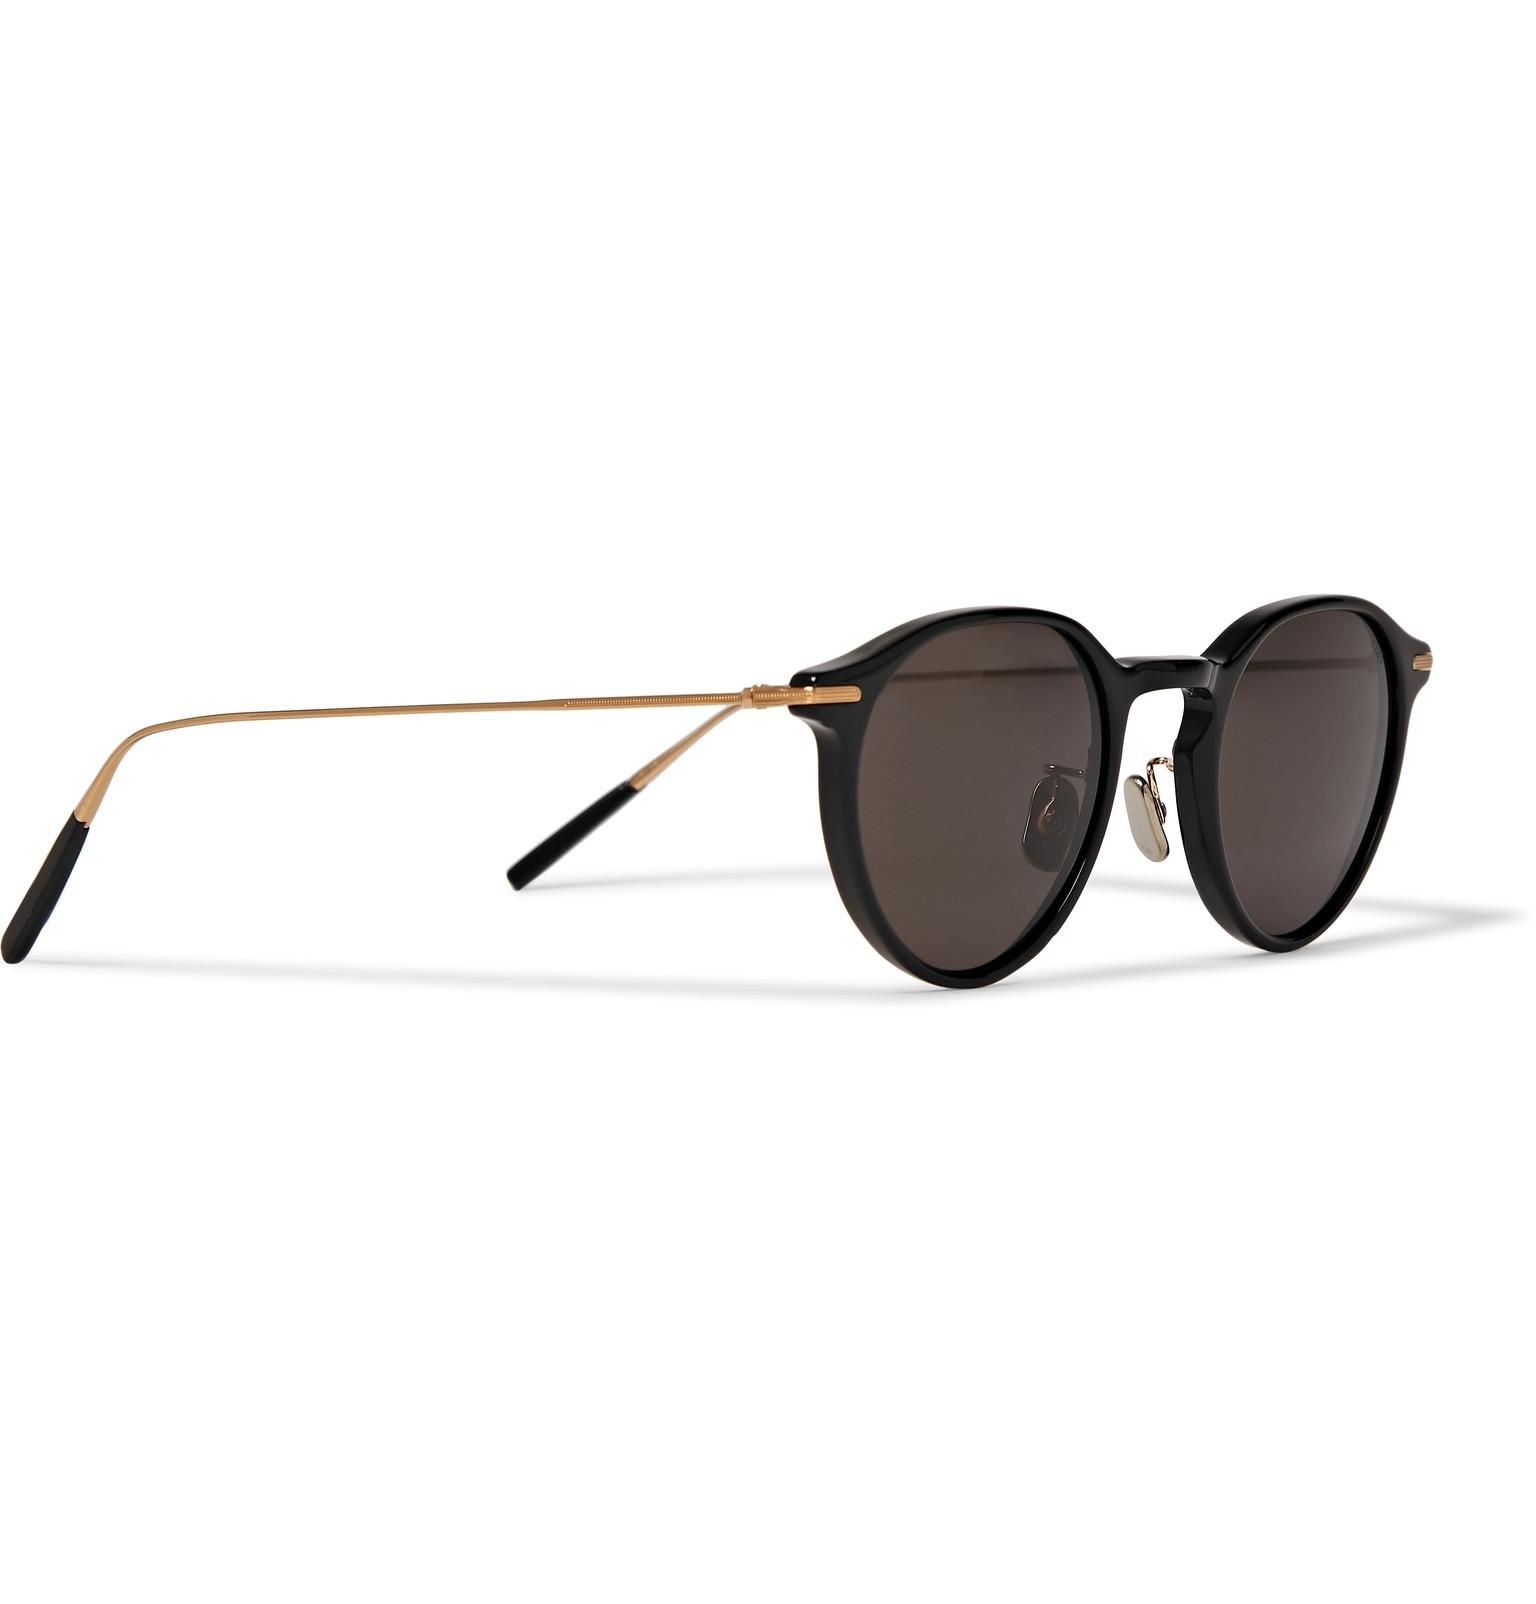 Gold Lyst In Sunglasses Eyevan Tone Frame And Round 7285 Acetate YOqTwY1